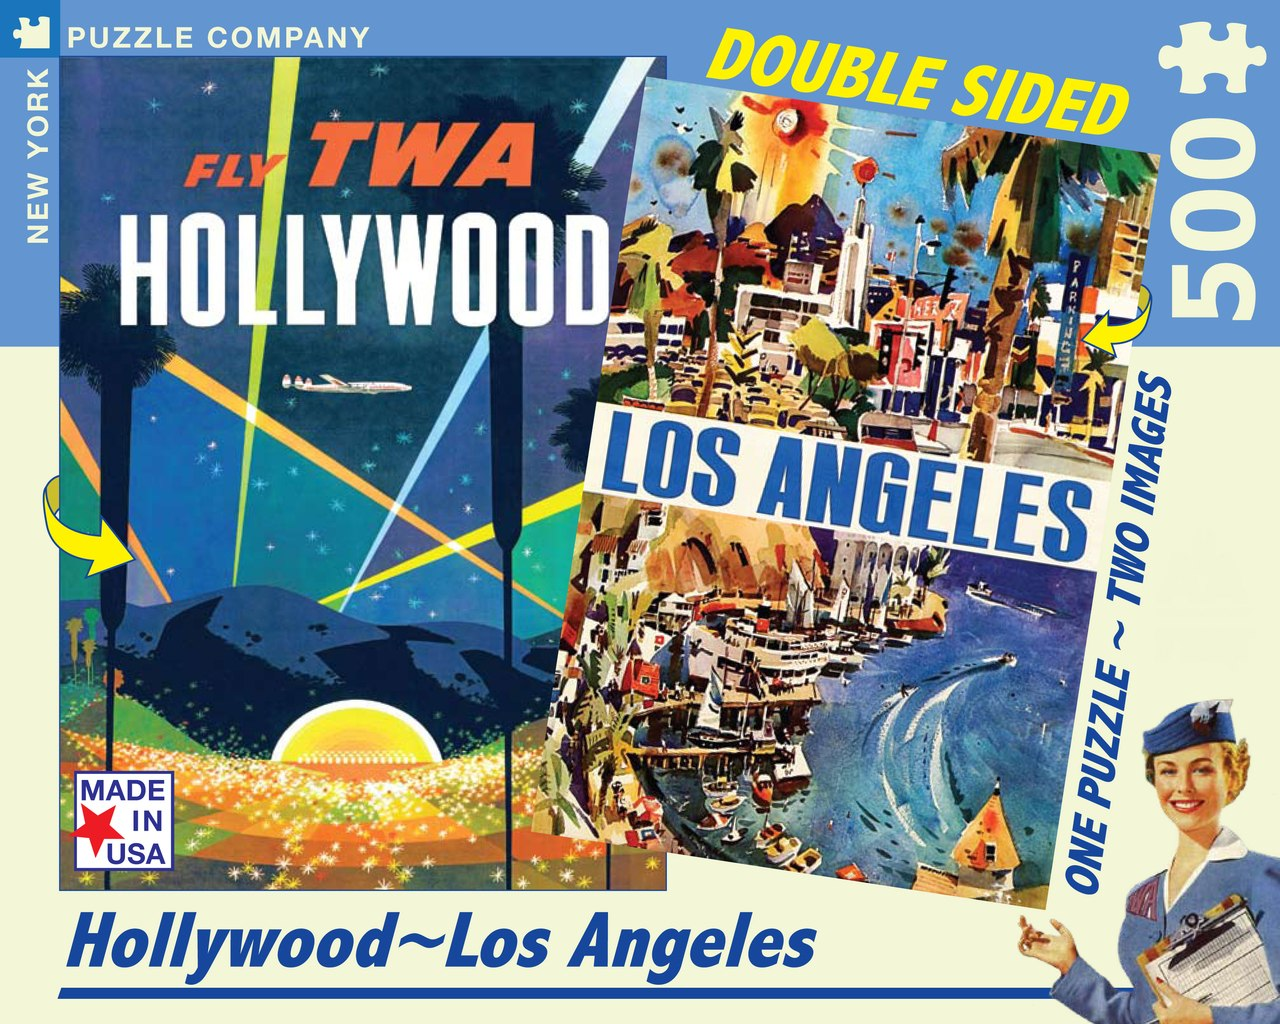 Los Angeles TWA - 500pc Double-Sided Jigsaw Puzzle by New York Puzzle Company